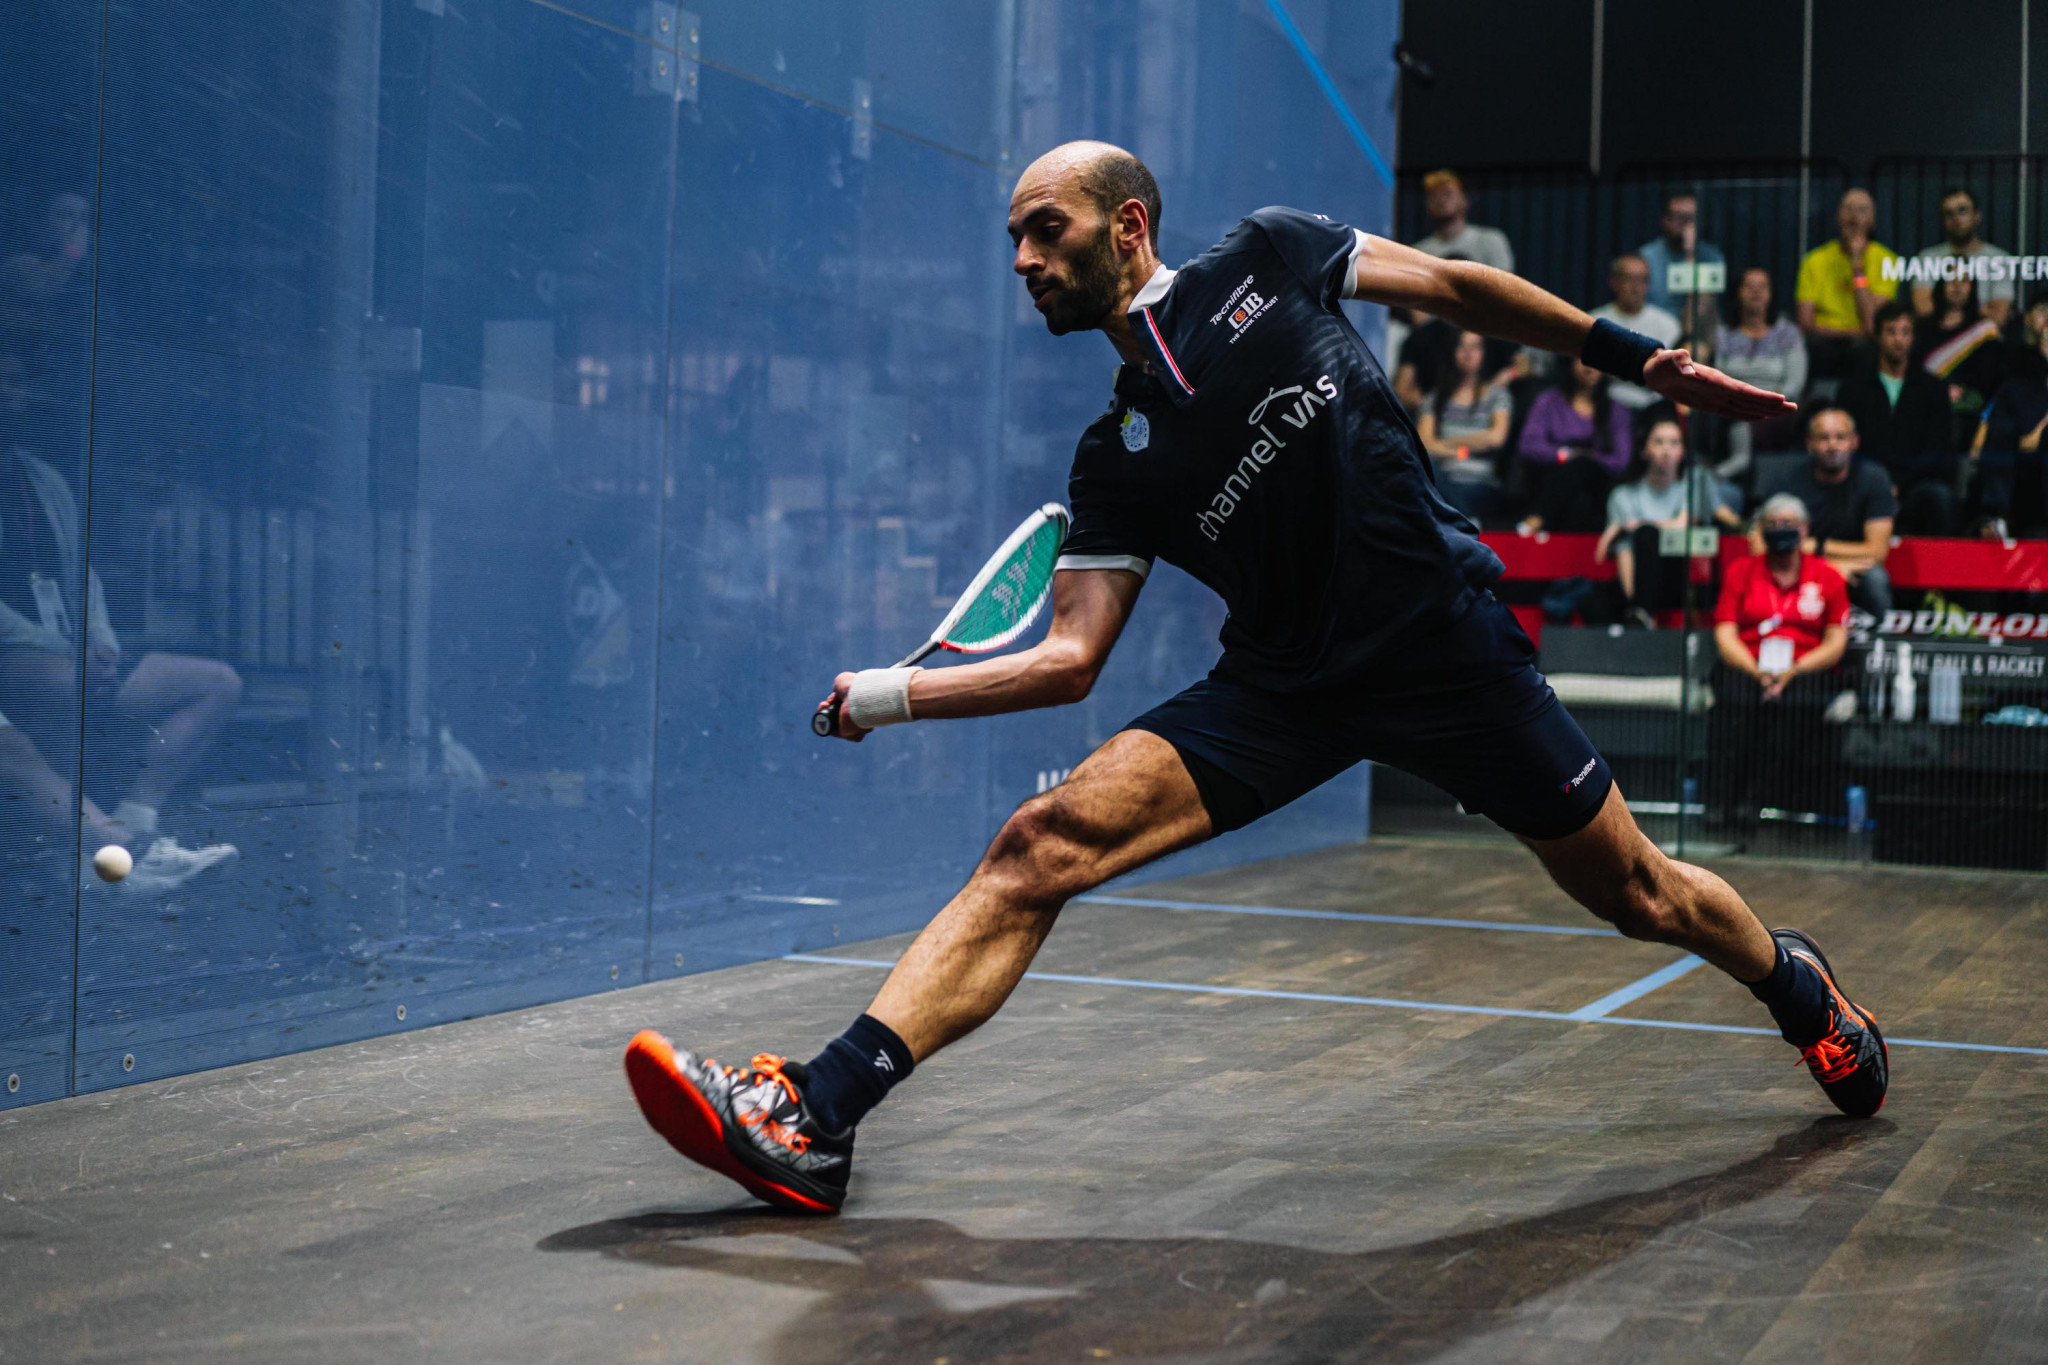 Men's top seed ElShorbagy survives scare as he battles into Manchester Open semi-finals